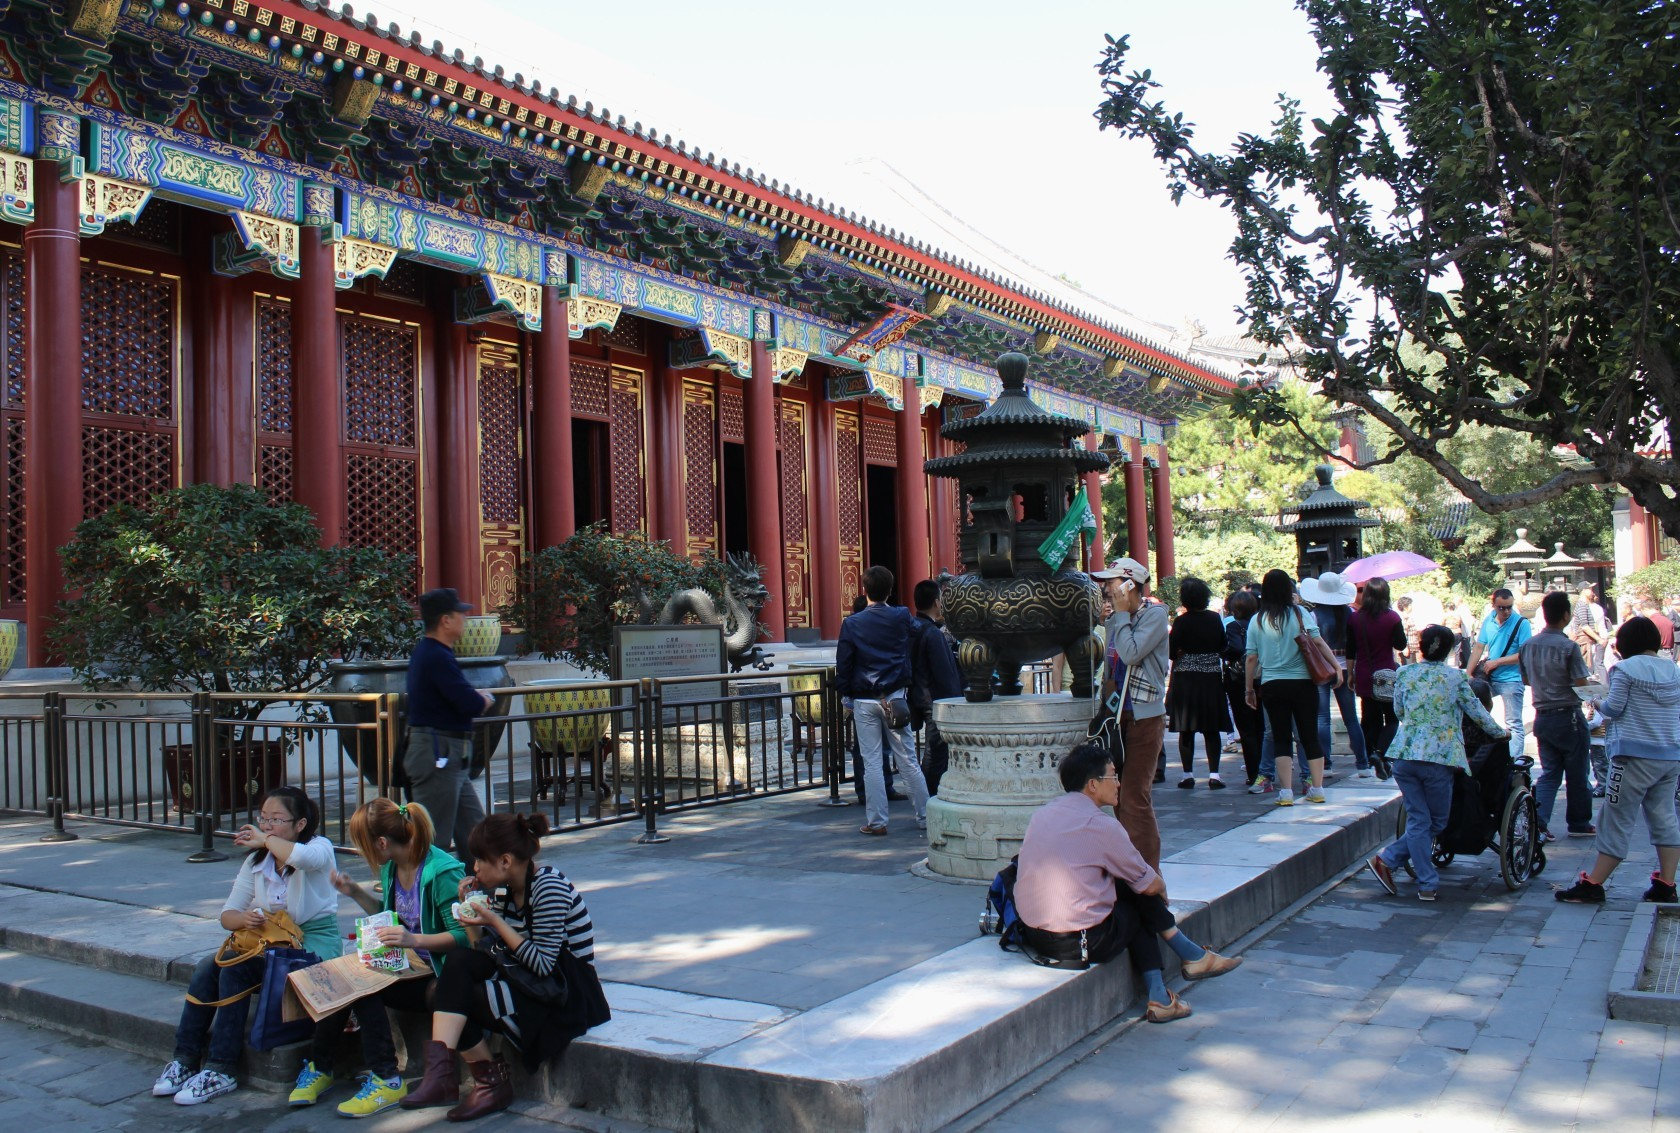 Peking/Beijing - Sommerpalast am Kunming Lake II